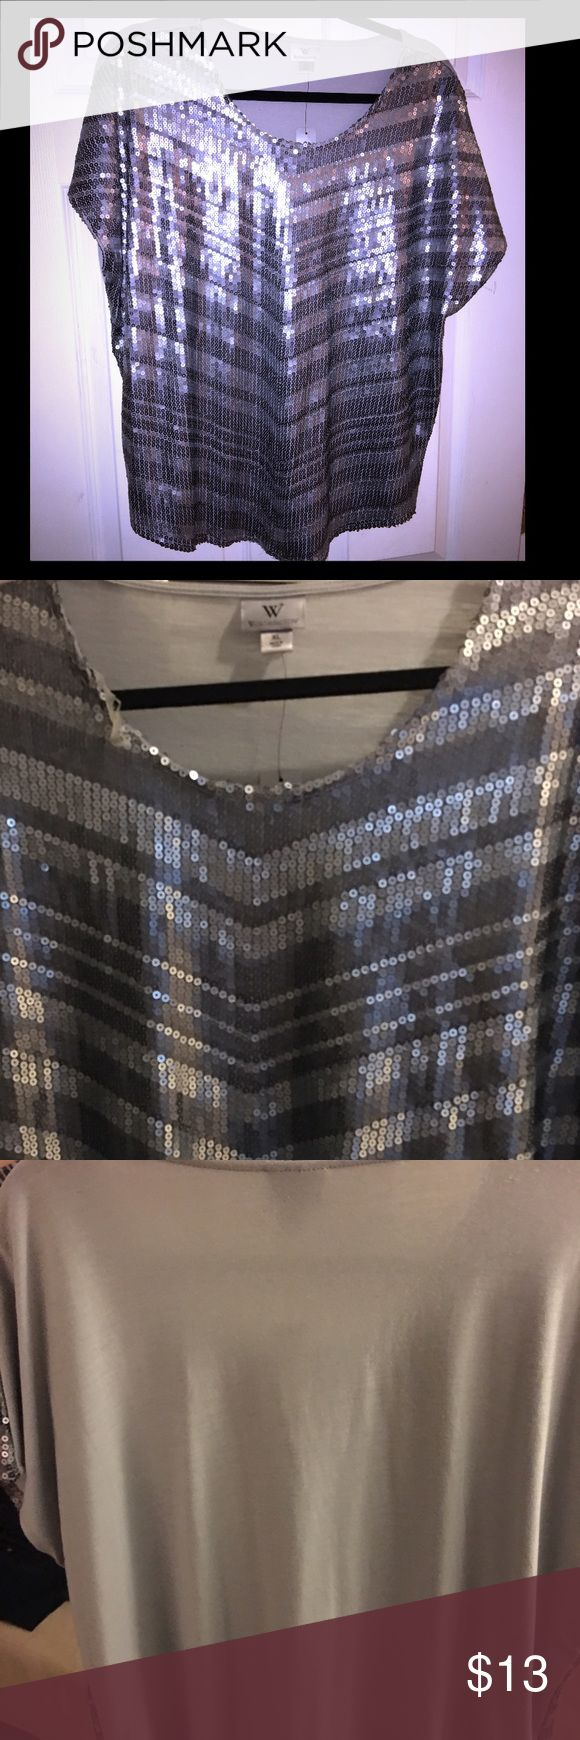 Nwt sequin chevron blouse xl Nwt worthington blouse. Size xl. Worthington Tops Blouses